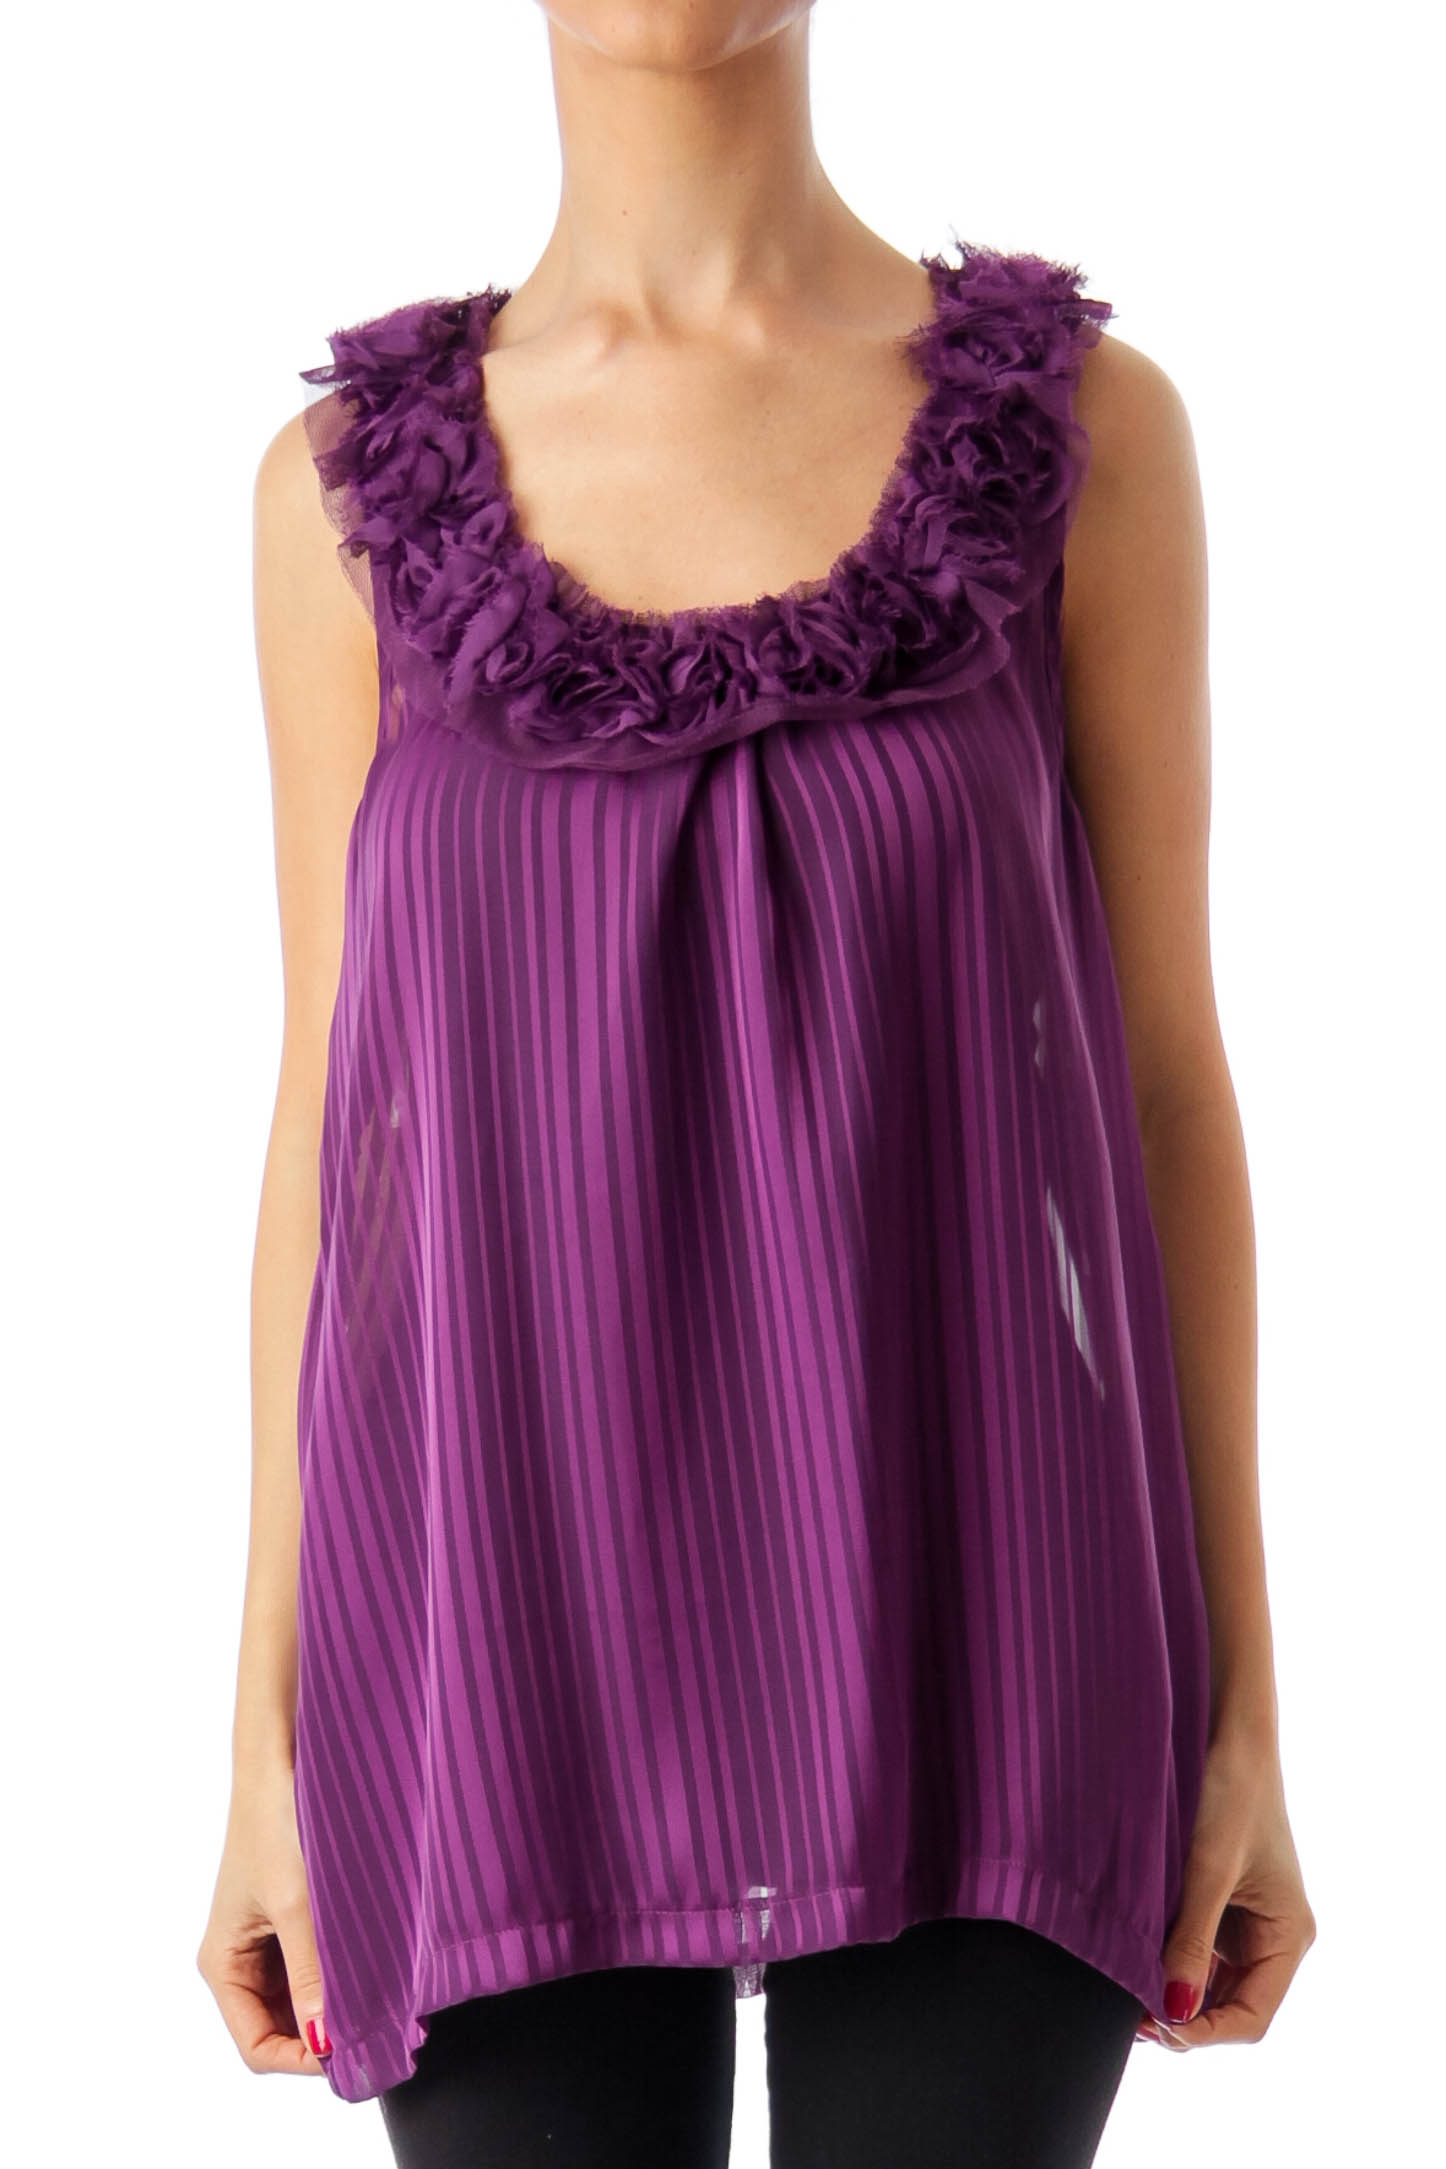 Purple See-Through Sleeveless Top